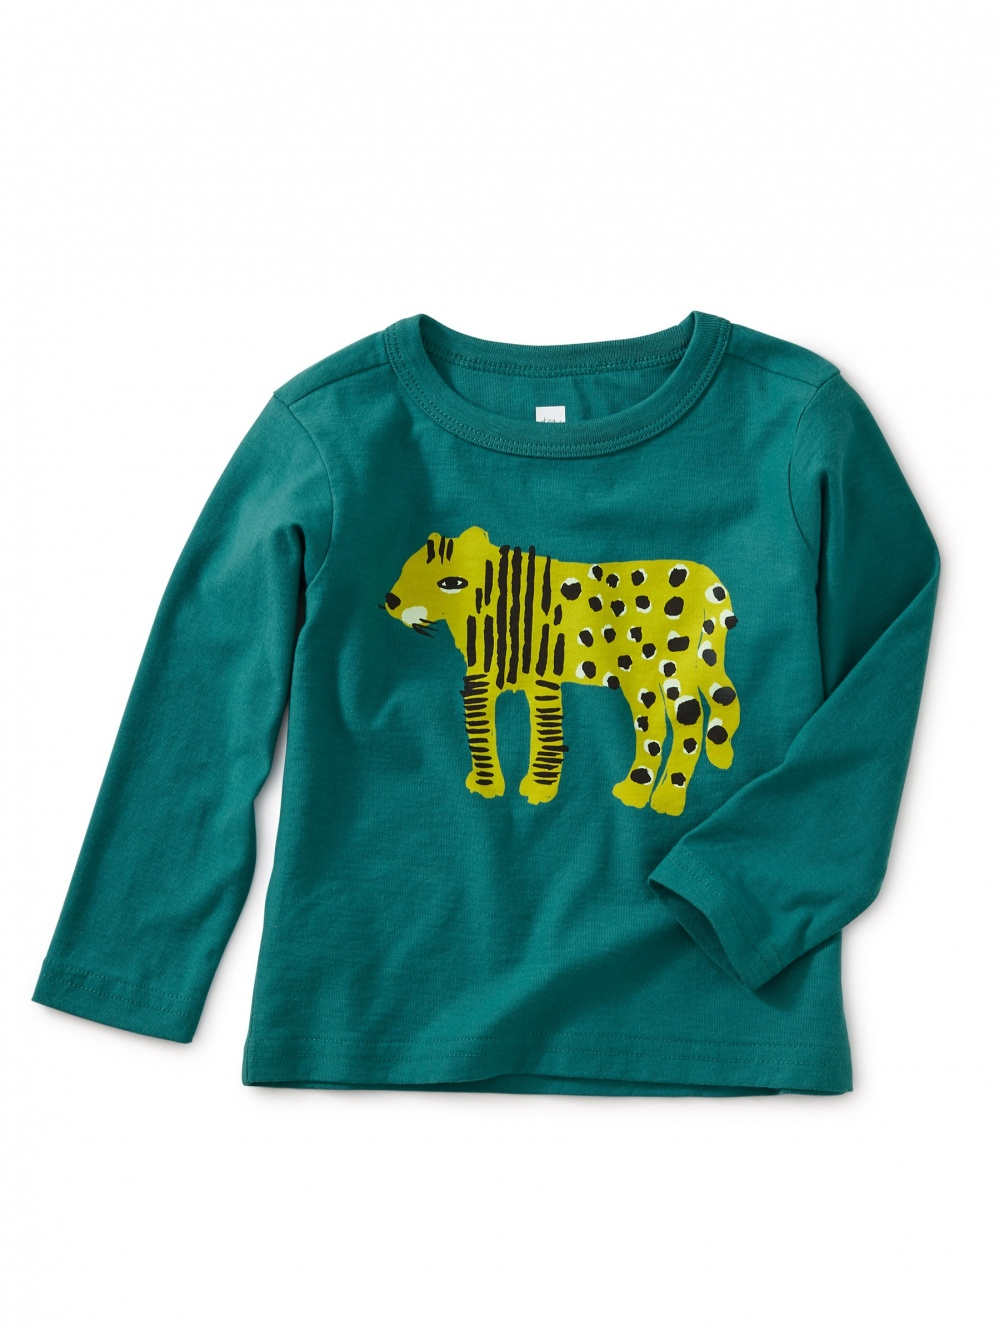 Liger Graphic Baby Tee